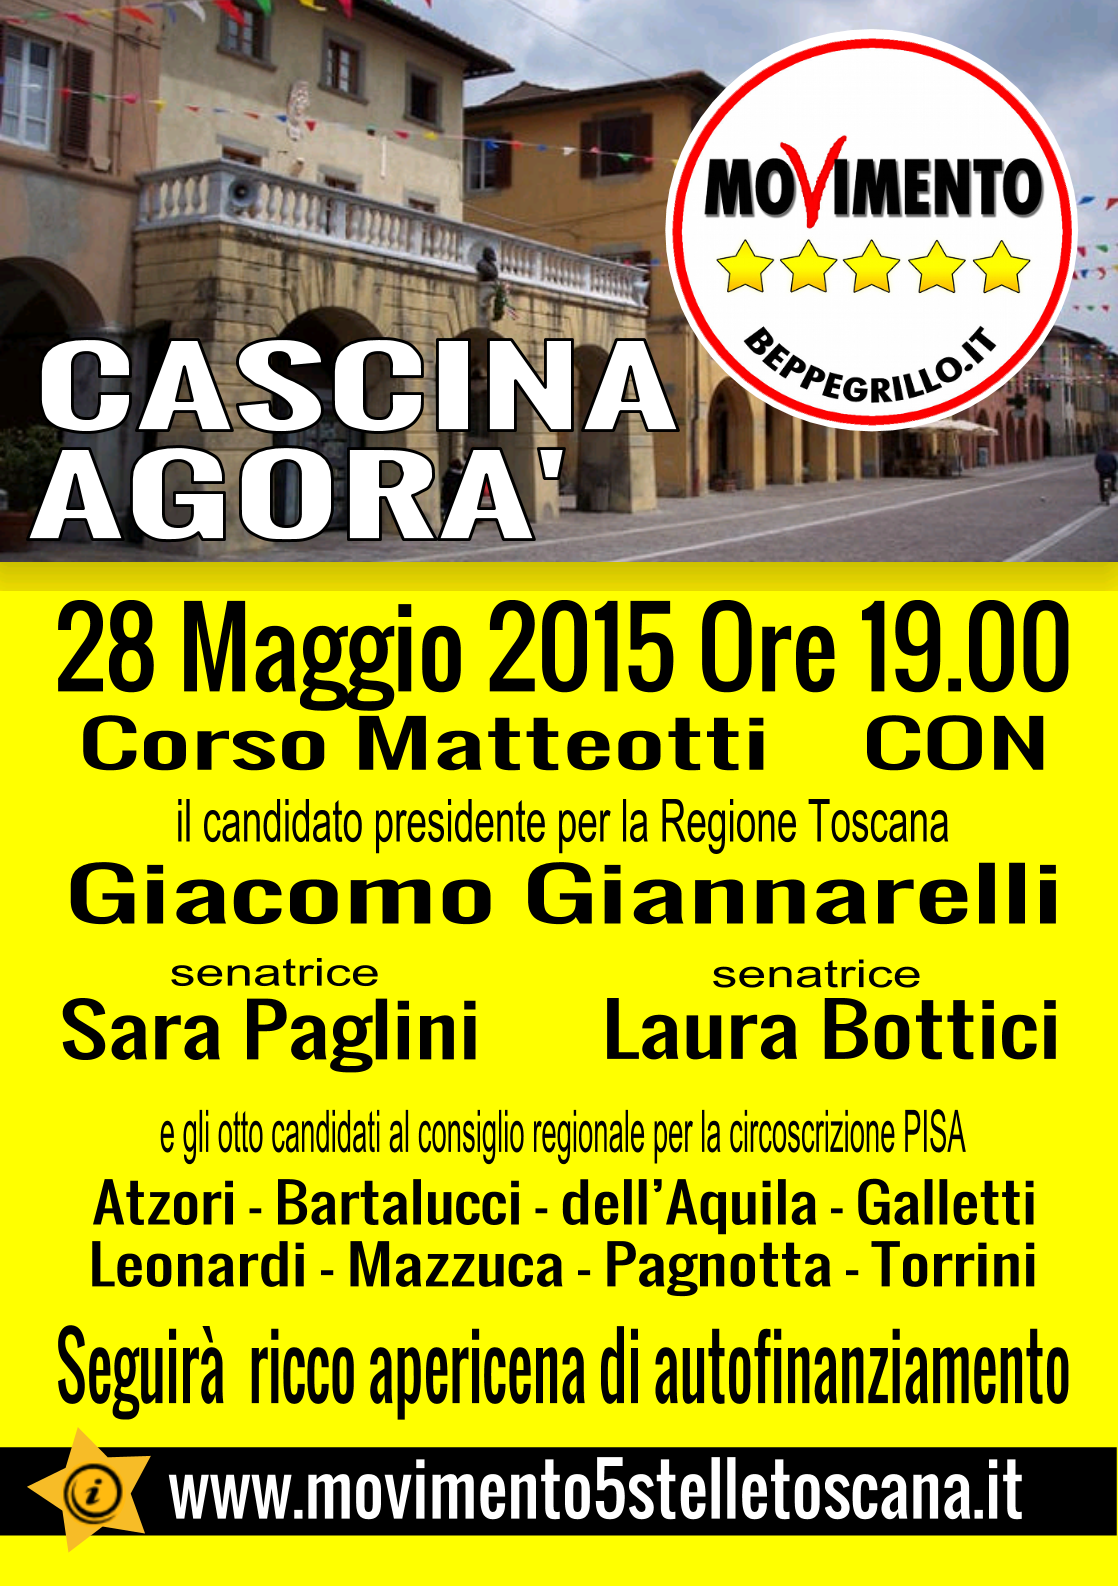 evento-28-5-cascina